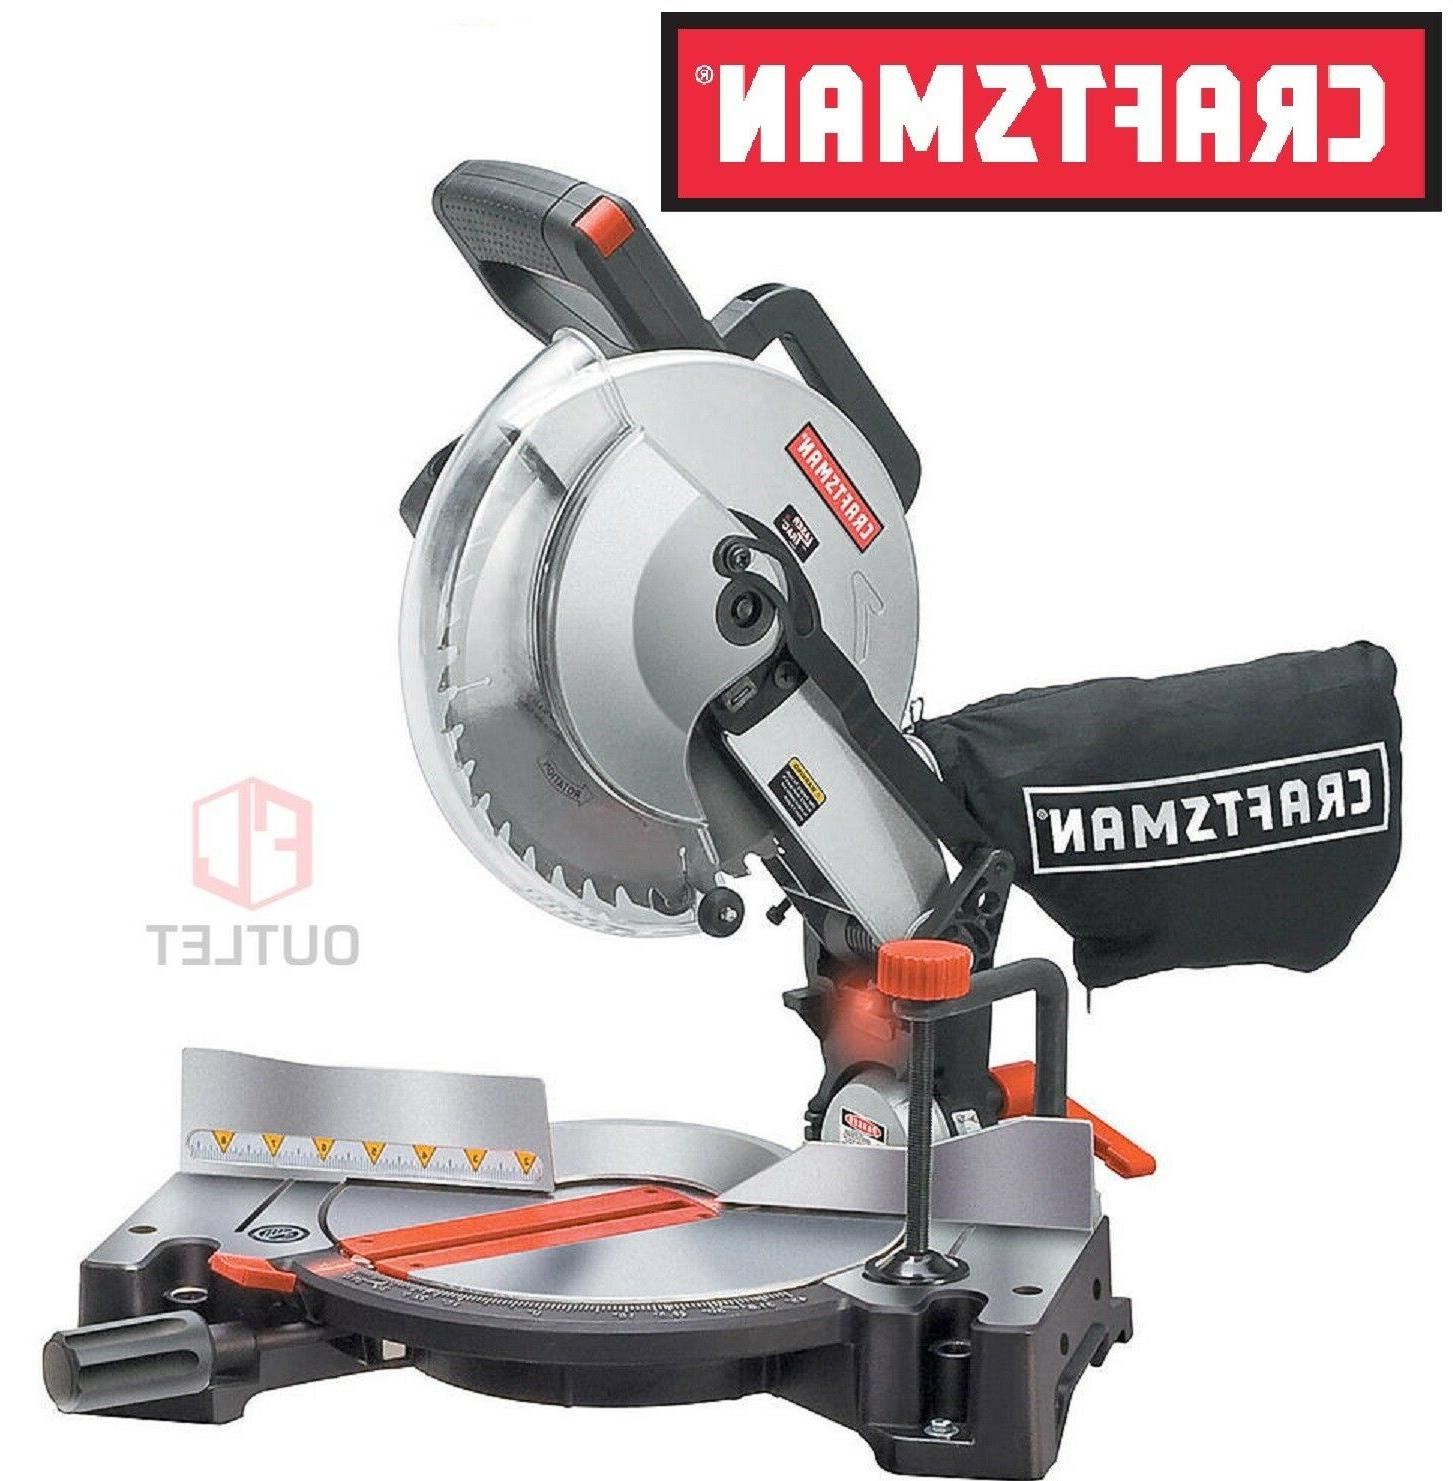 10 compound miter saw with laser trac